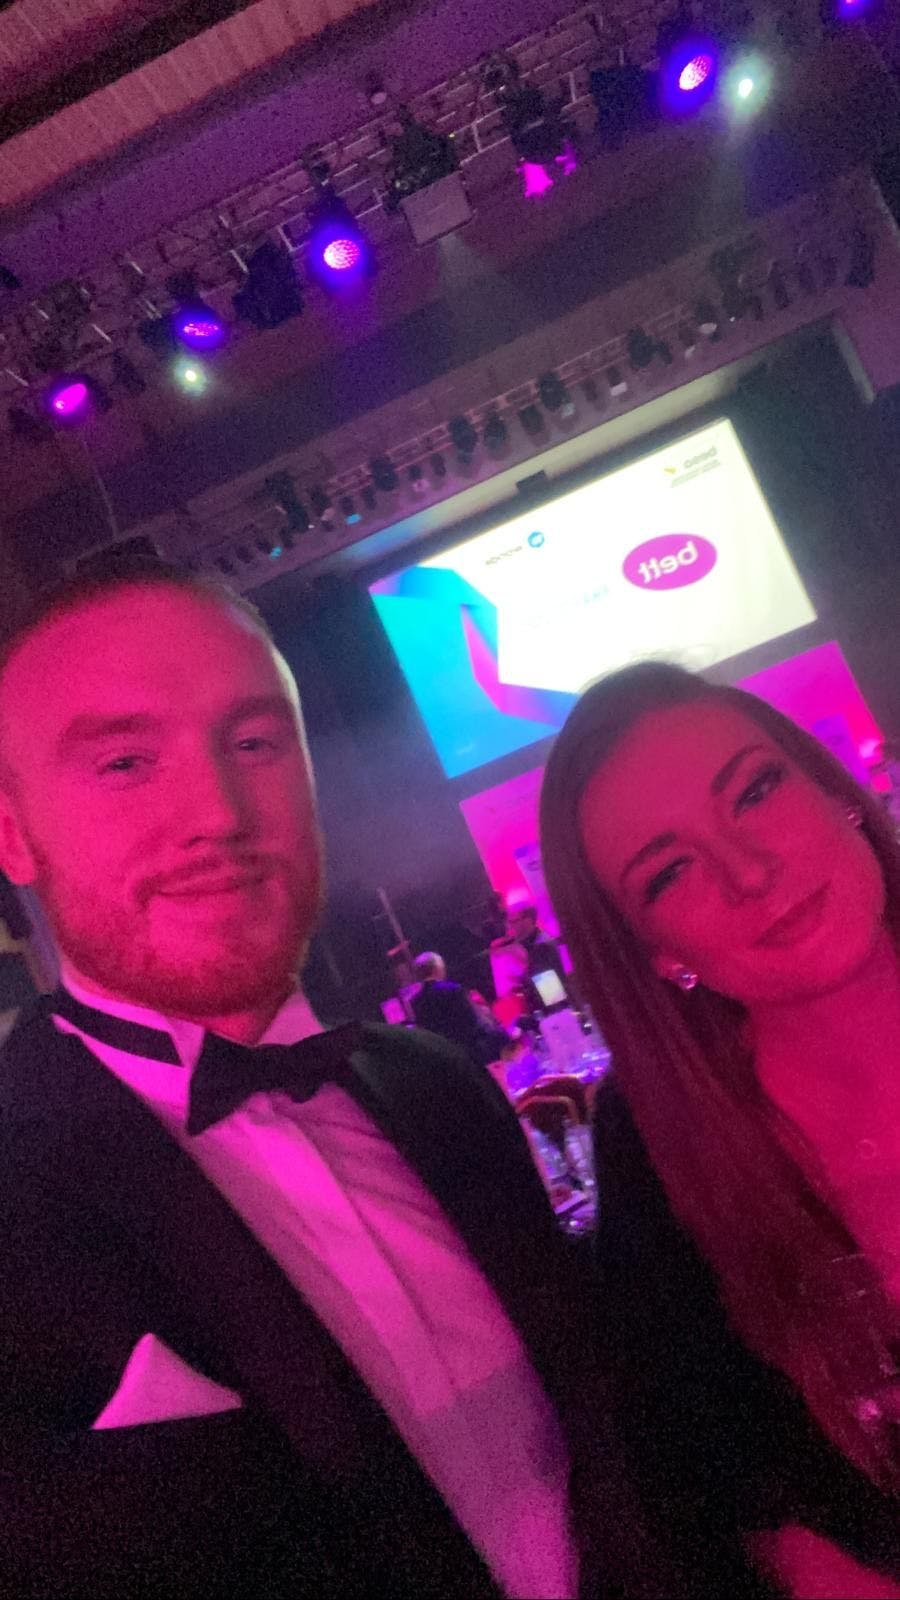 Photo by the SCR tracker team of Co Founder Luke O'Dwyer and Head of Business Development Julia Nielsen at Troxy London Bett Awards Show 2020 where single central record register online software wins highly commended in leadership and management solutions judges commented excellent entrepreneur entrepreneurial spirit and successful safeguarding of students education educational organisations institutions black tie event award-winning